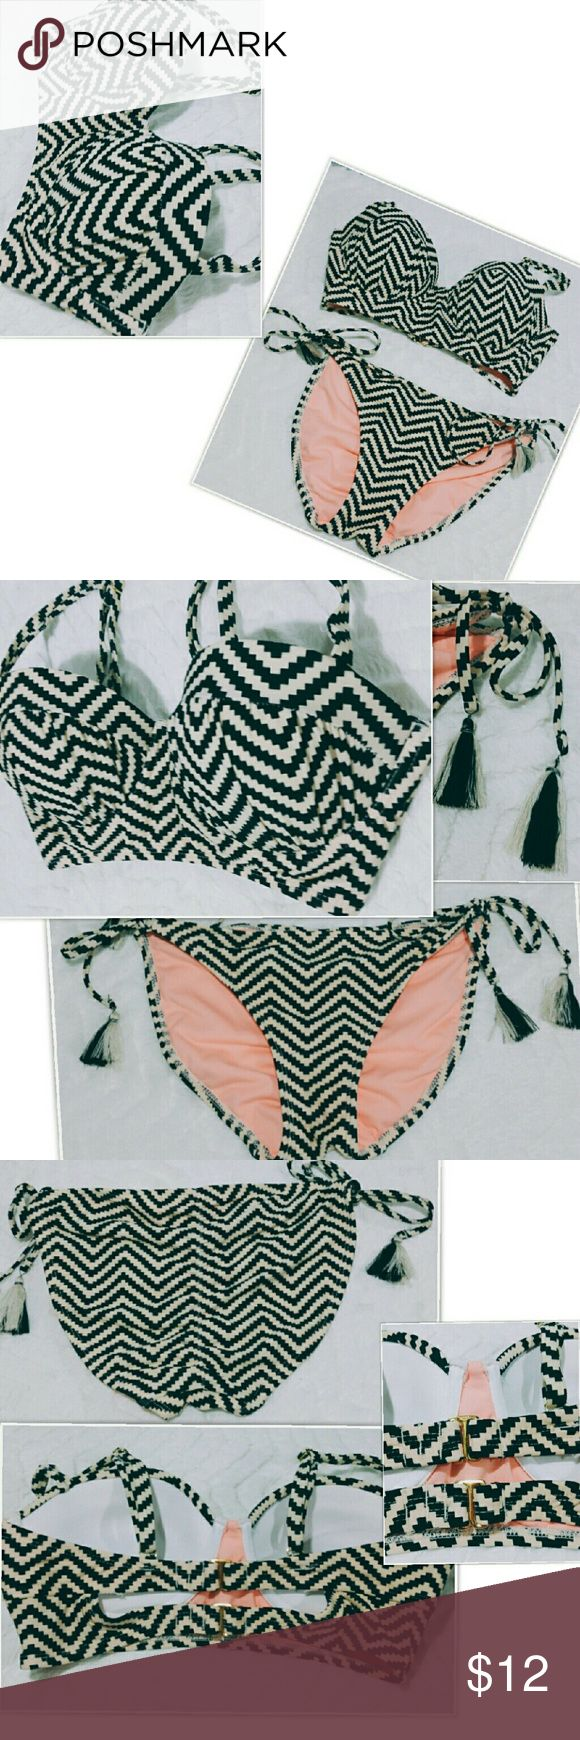 NWOT Bikini Super cute bikini swimsuit by Ninety Nine. Top and bottom are both size M. Tags were cut out of top and then i decided i wanted another suit so i never wore this one. Top has padding and pushup with adjustable straps. Bottom is tie on each side. Colors are black and cream with peach on inside of suit. Ninety Nine Swim Bikinis